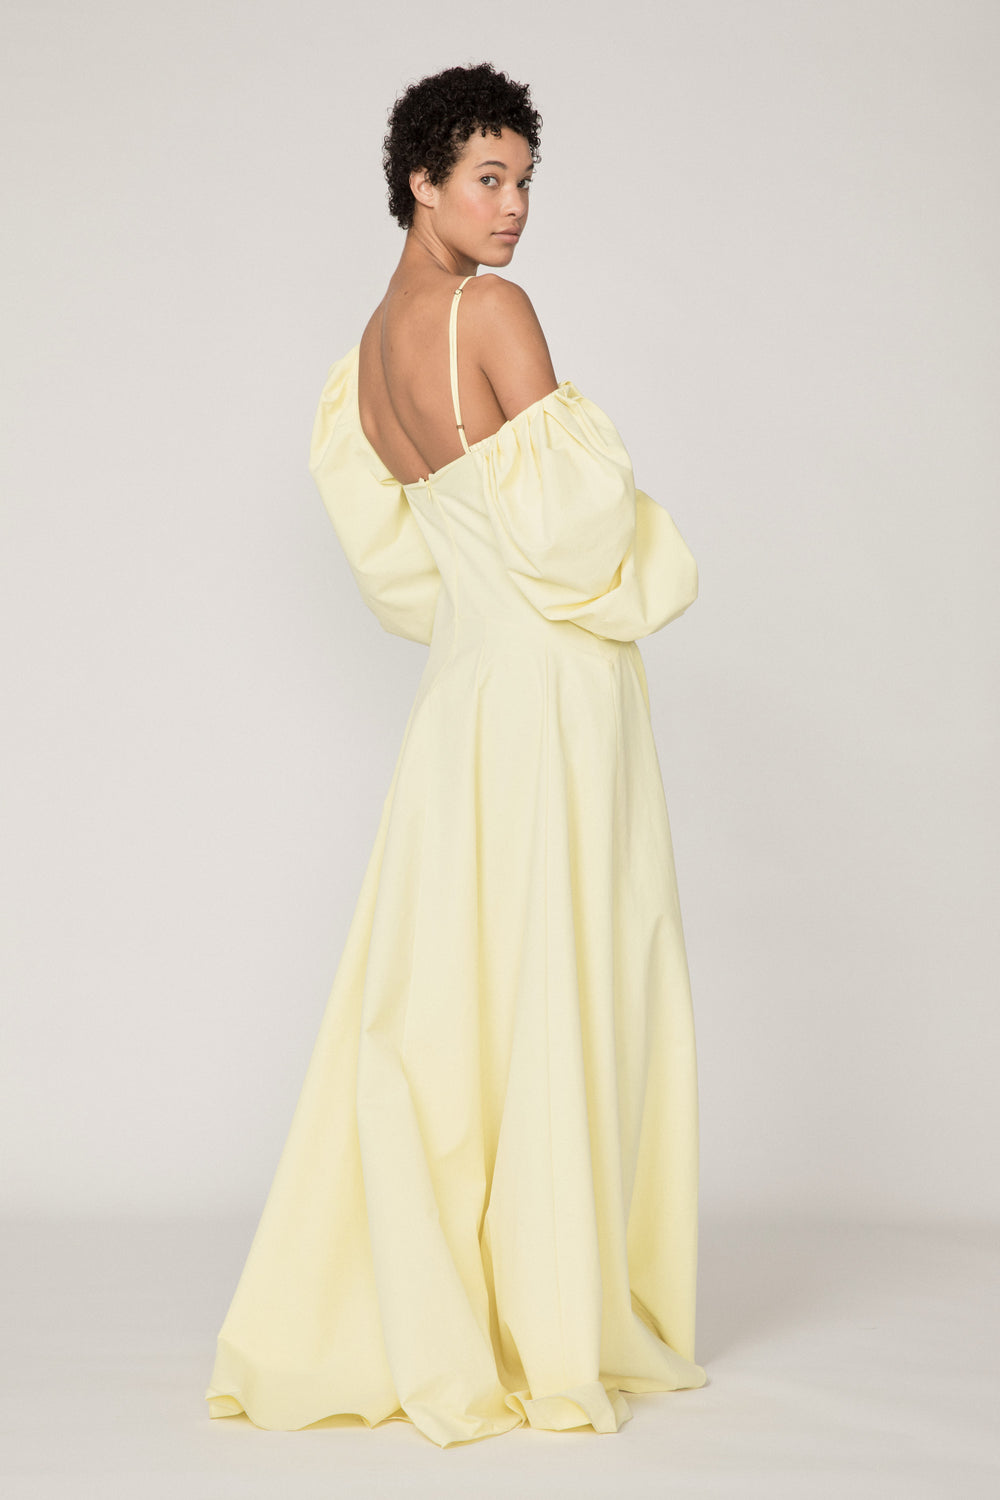 Rosie Assoulin Pre-Fall 2019 Ups and Downs Gown. Asymmetrical off-the-shoulder cami gown. Adjustable shoulder straps. Elasticized balloon sleeves. Invisible zipper in back. Yellow. 100% Cotton. Sizes 0 - 12.